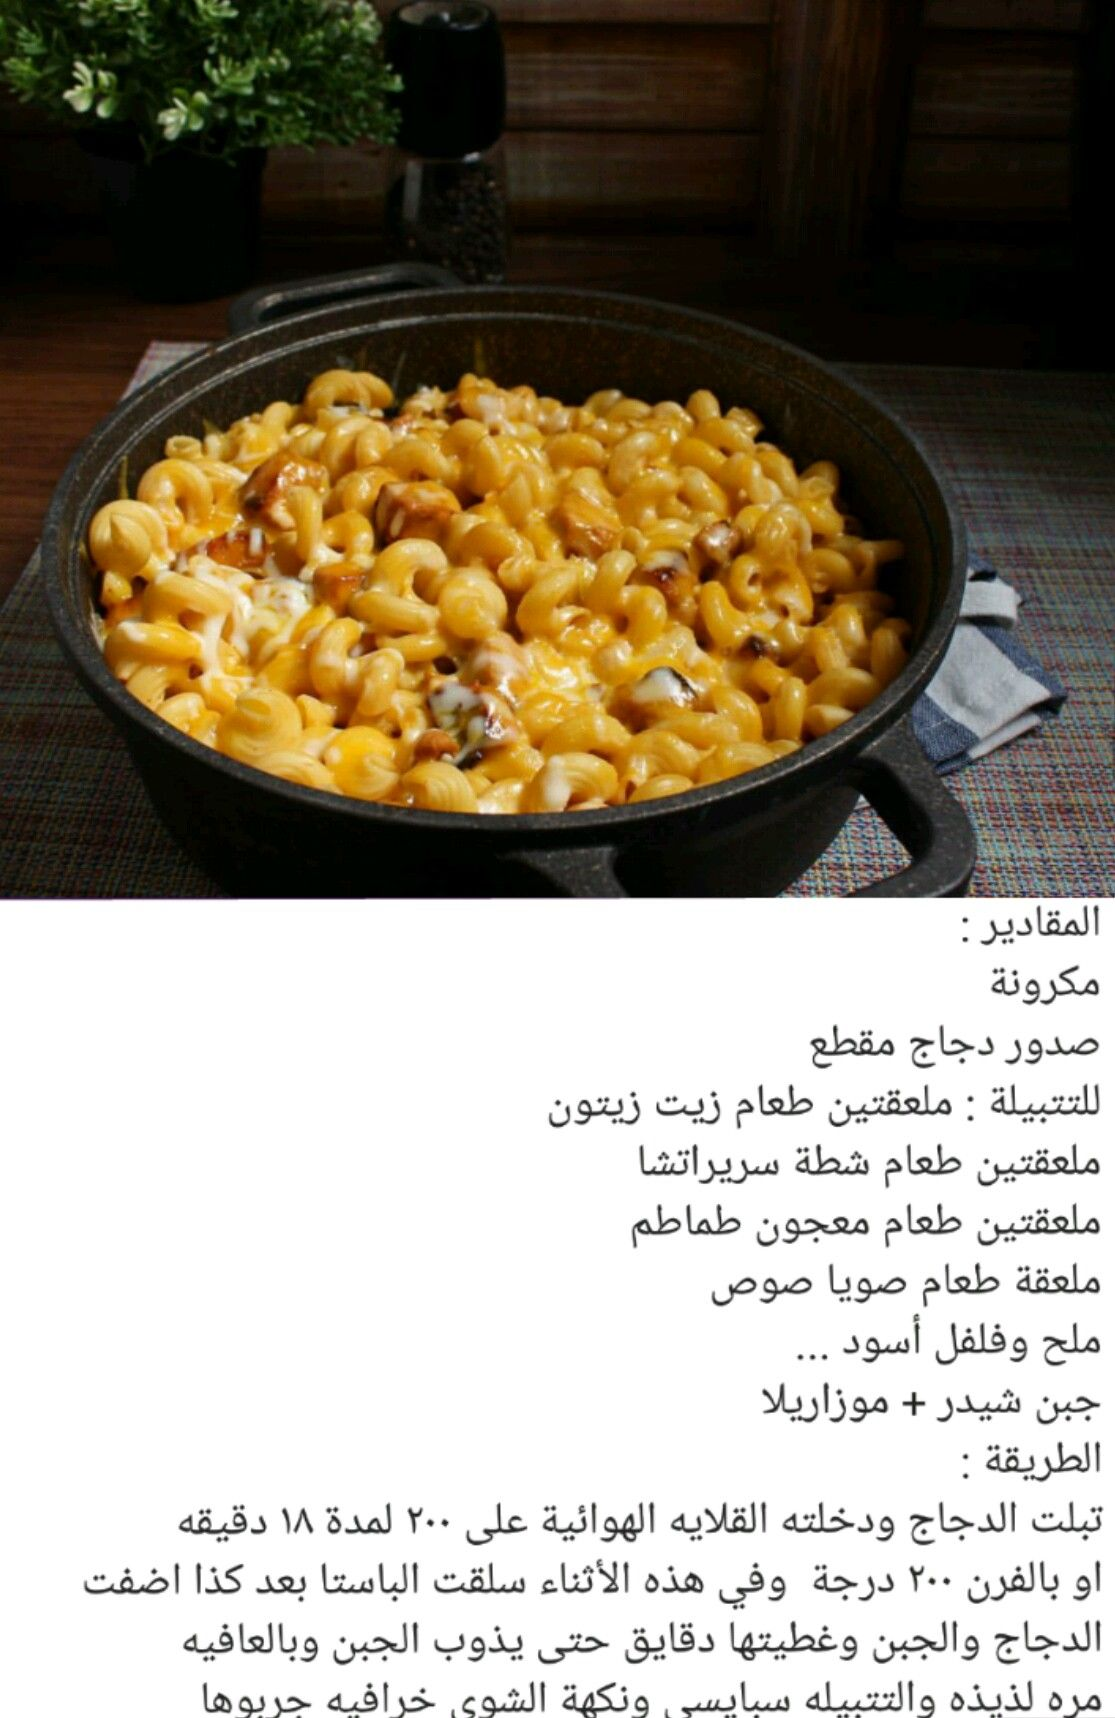 Pin By Ameera On طبخ Food Cooking Arabic Food